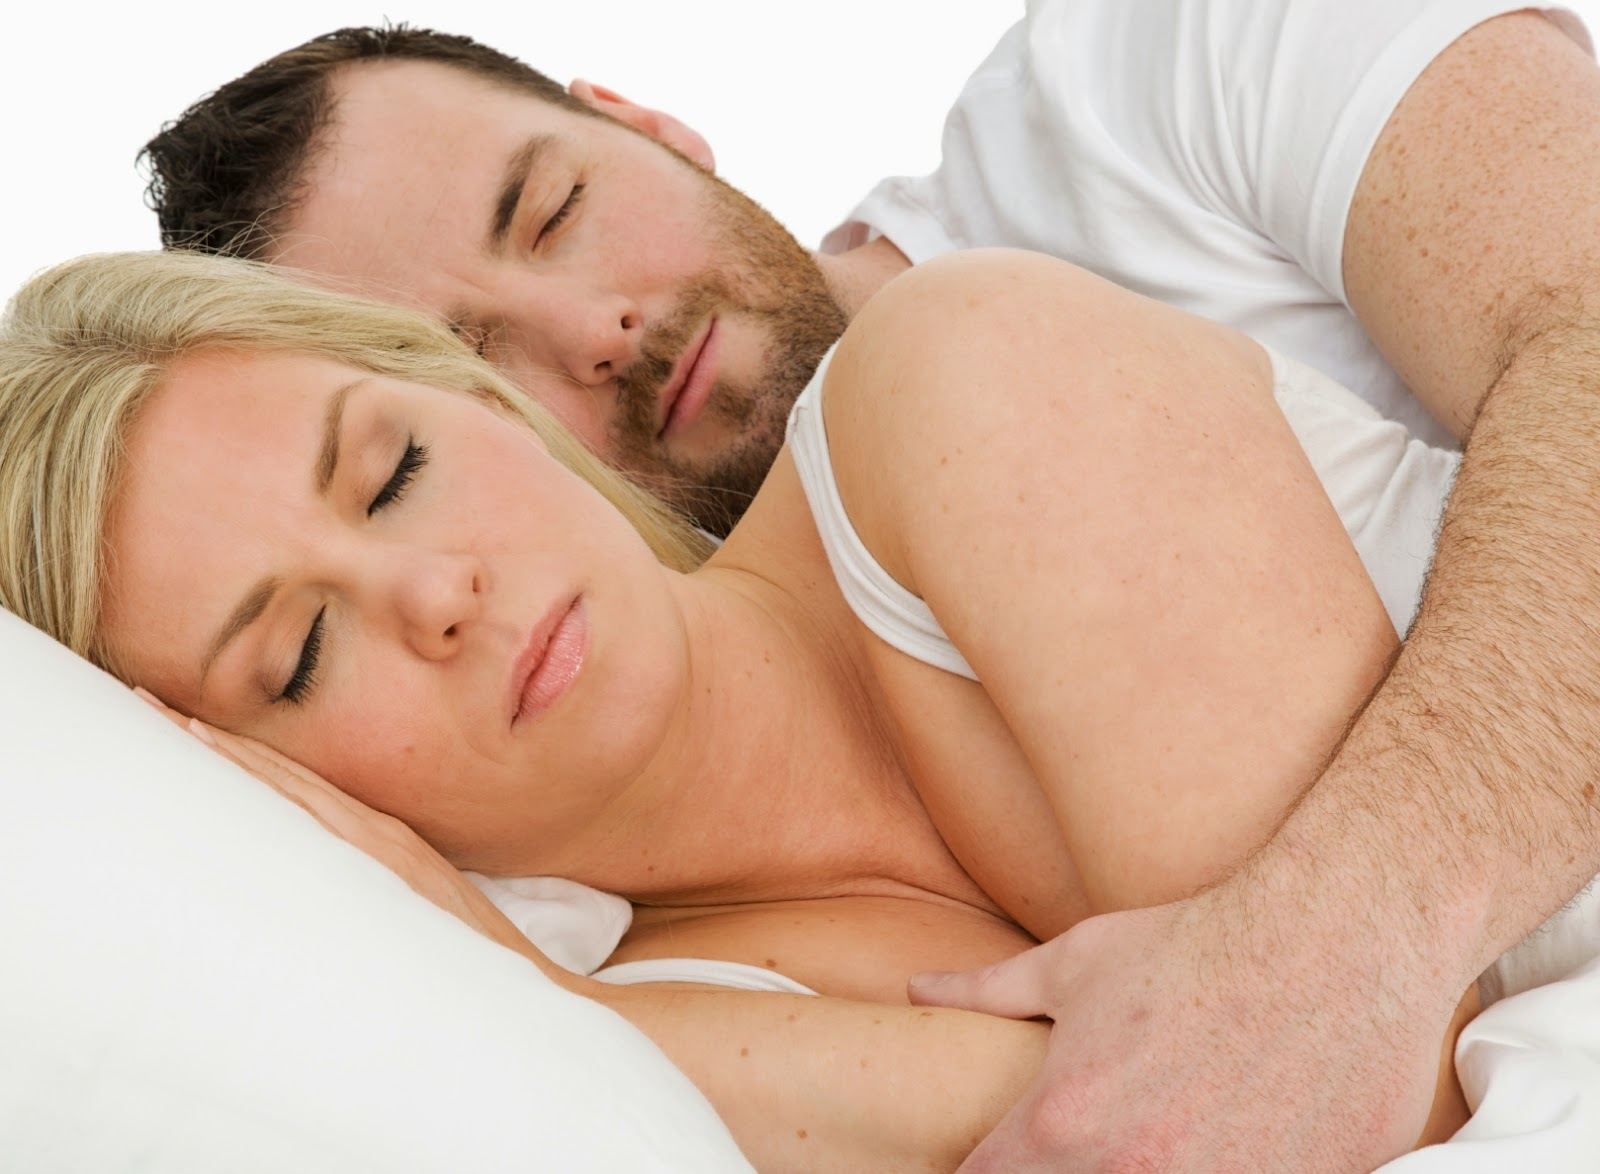 Couple in restful sleep